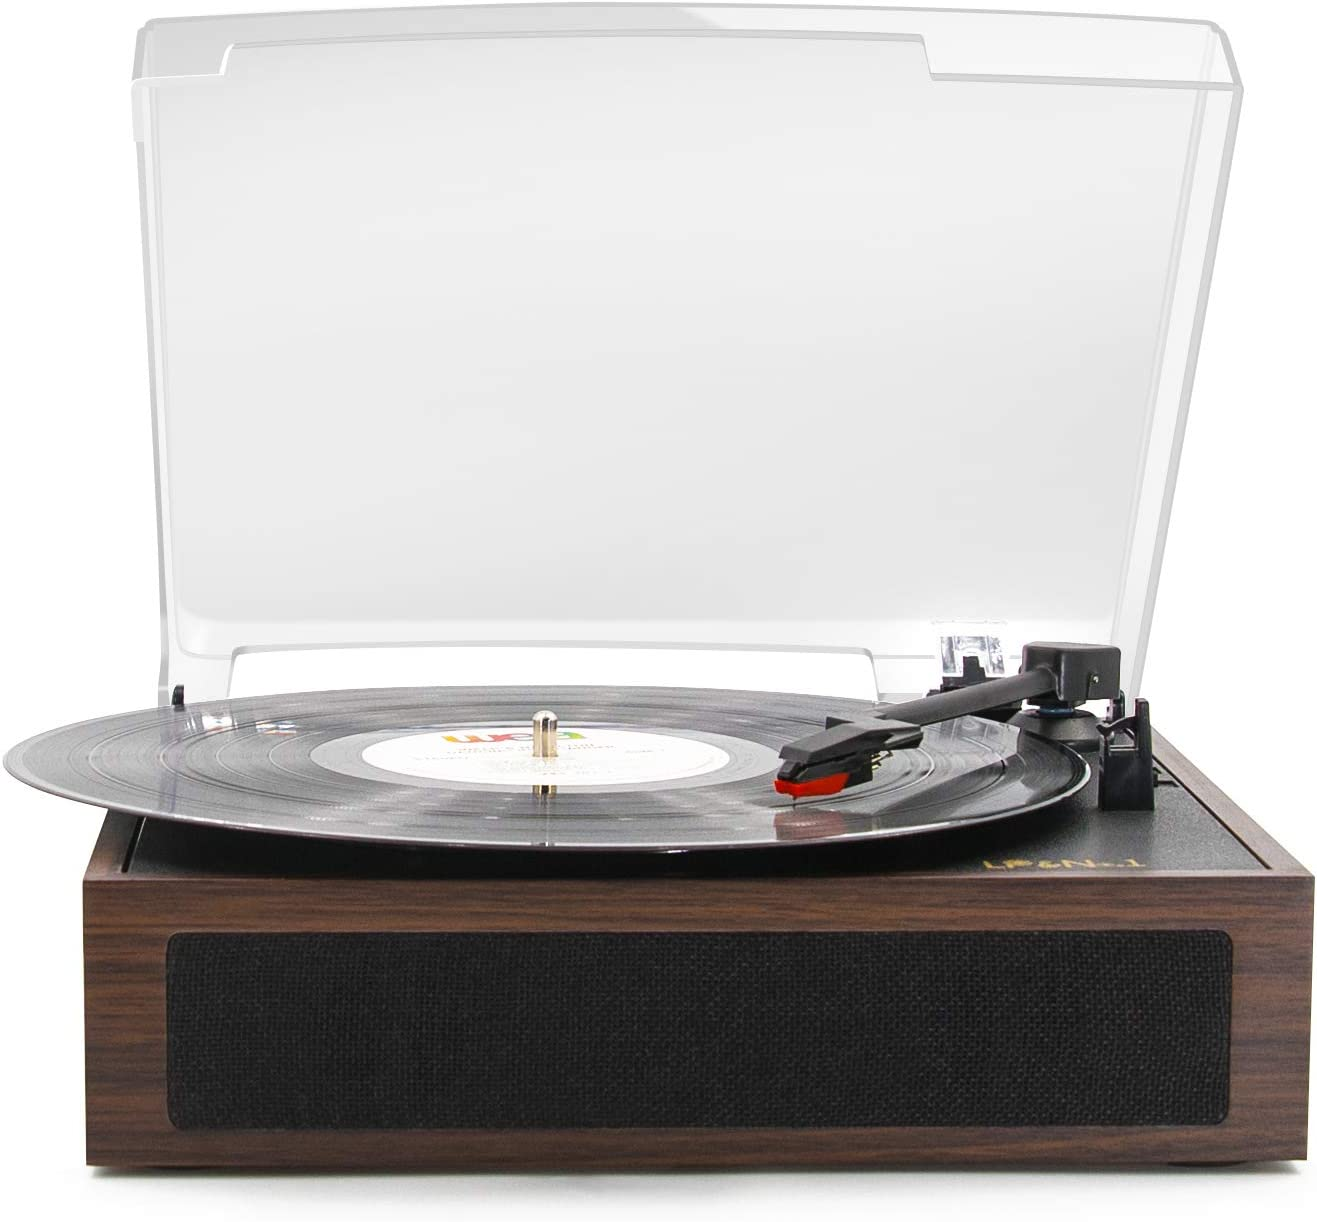 LP&No.1 Vintage Vinyl Record Player with Stereo Speakers,3 Speed Turntable, Dark Brown